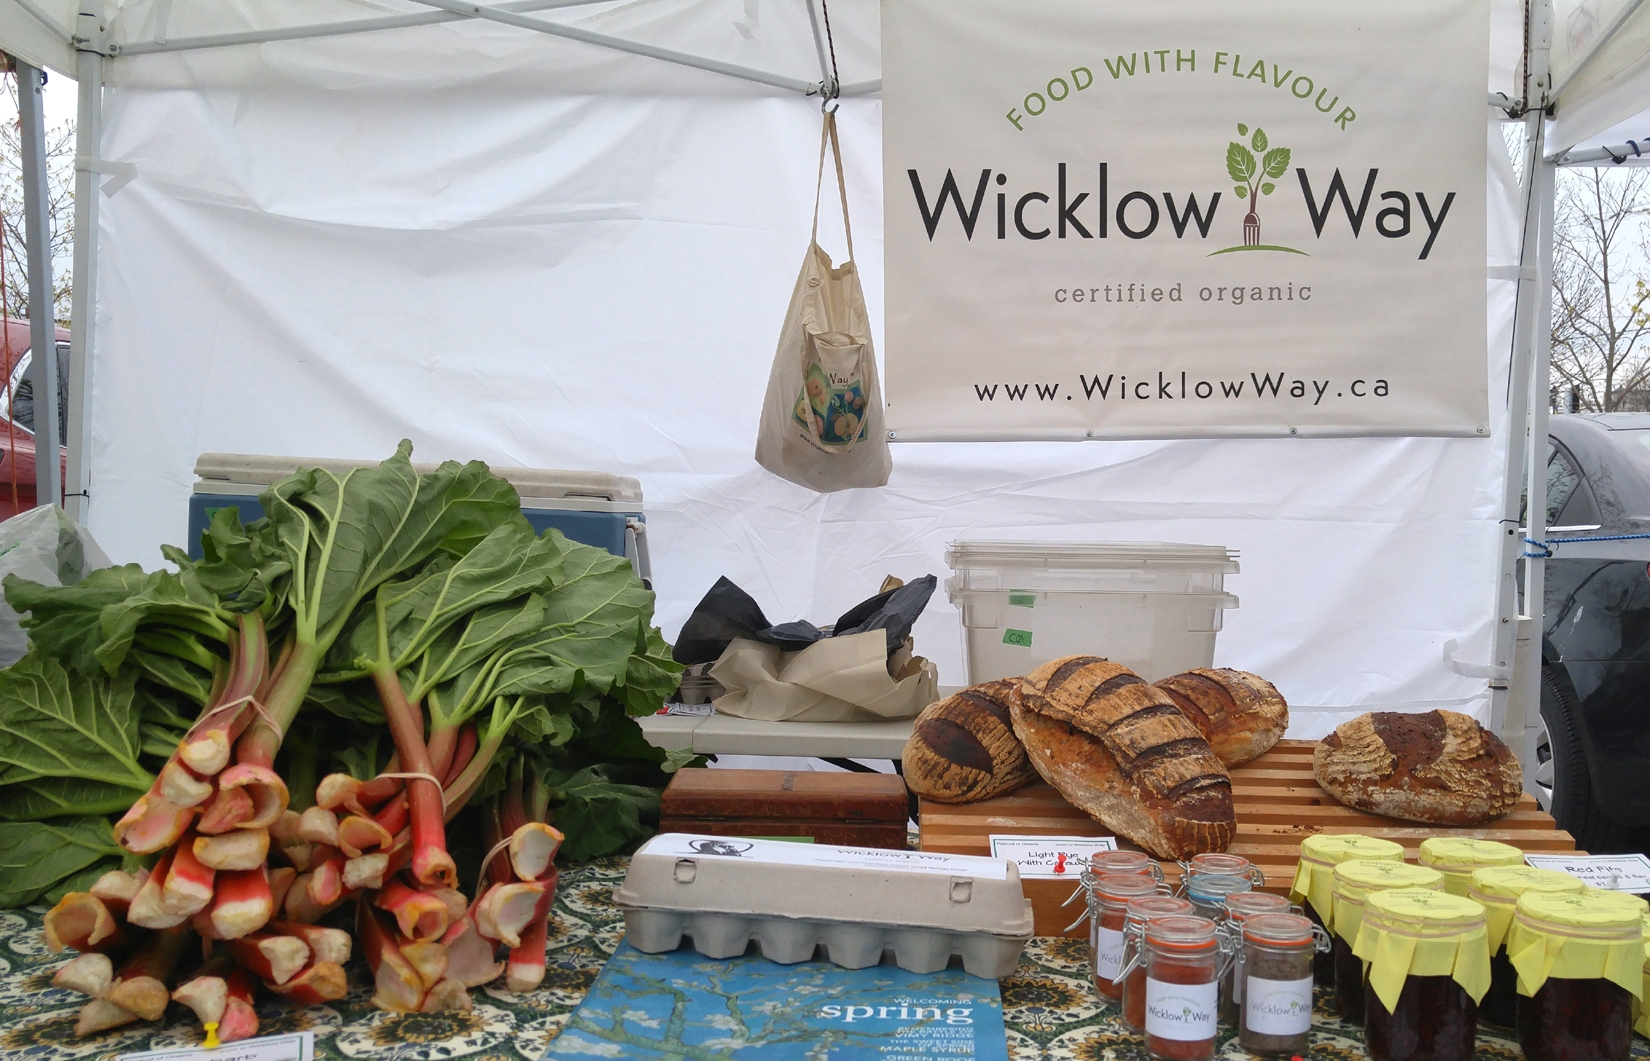 Some of the wonderful offerings of Wicklow Way Farm.